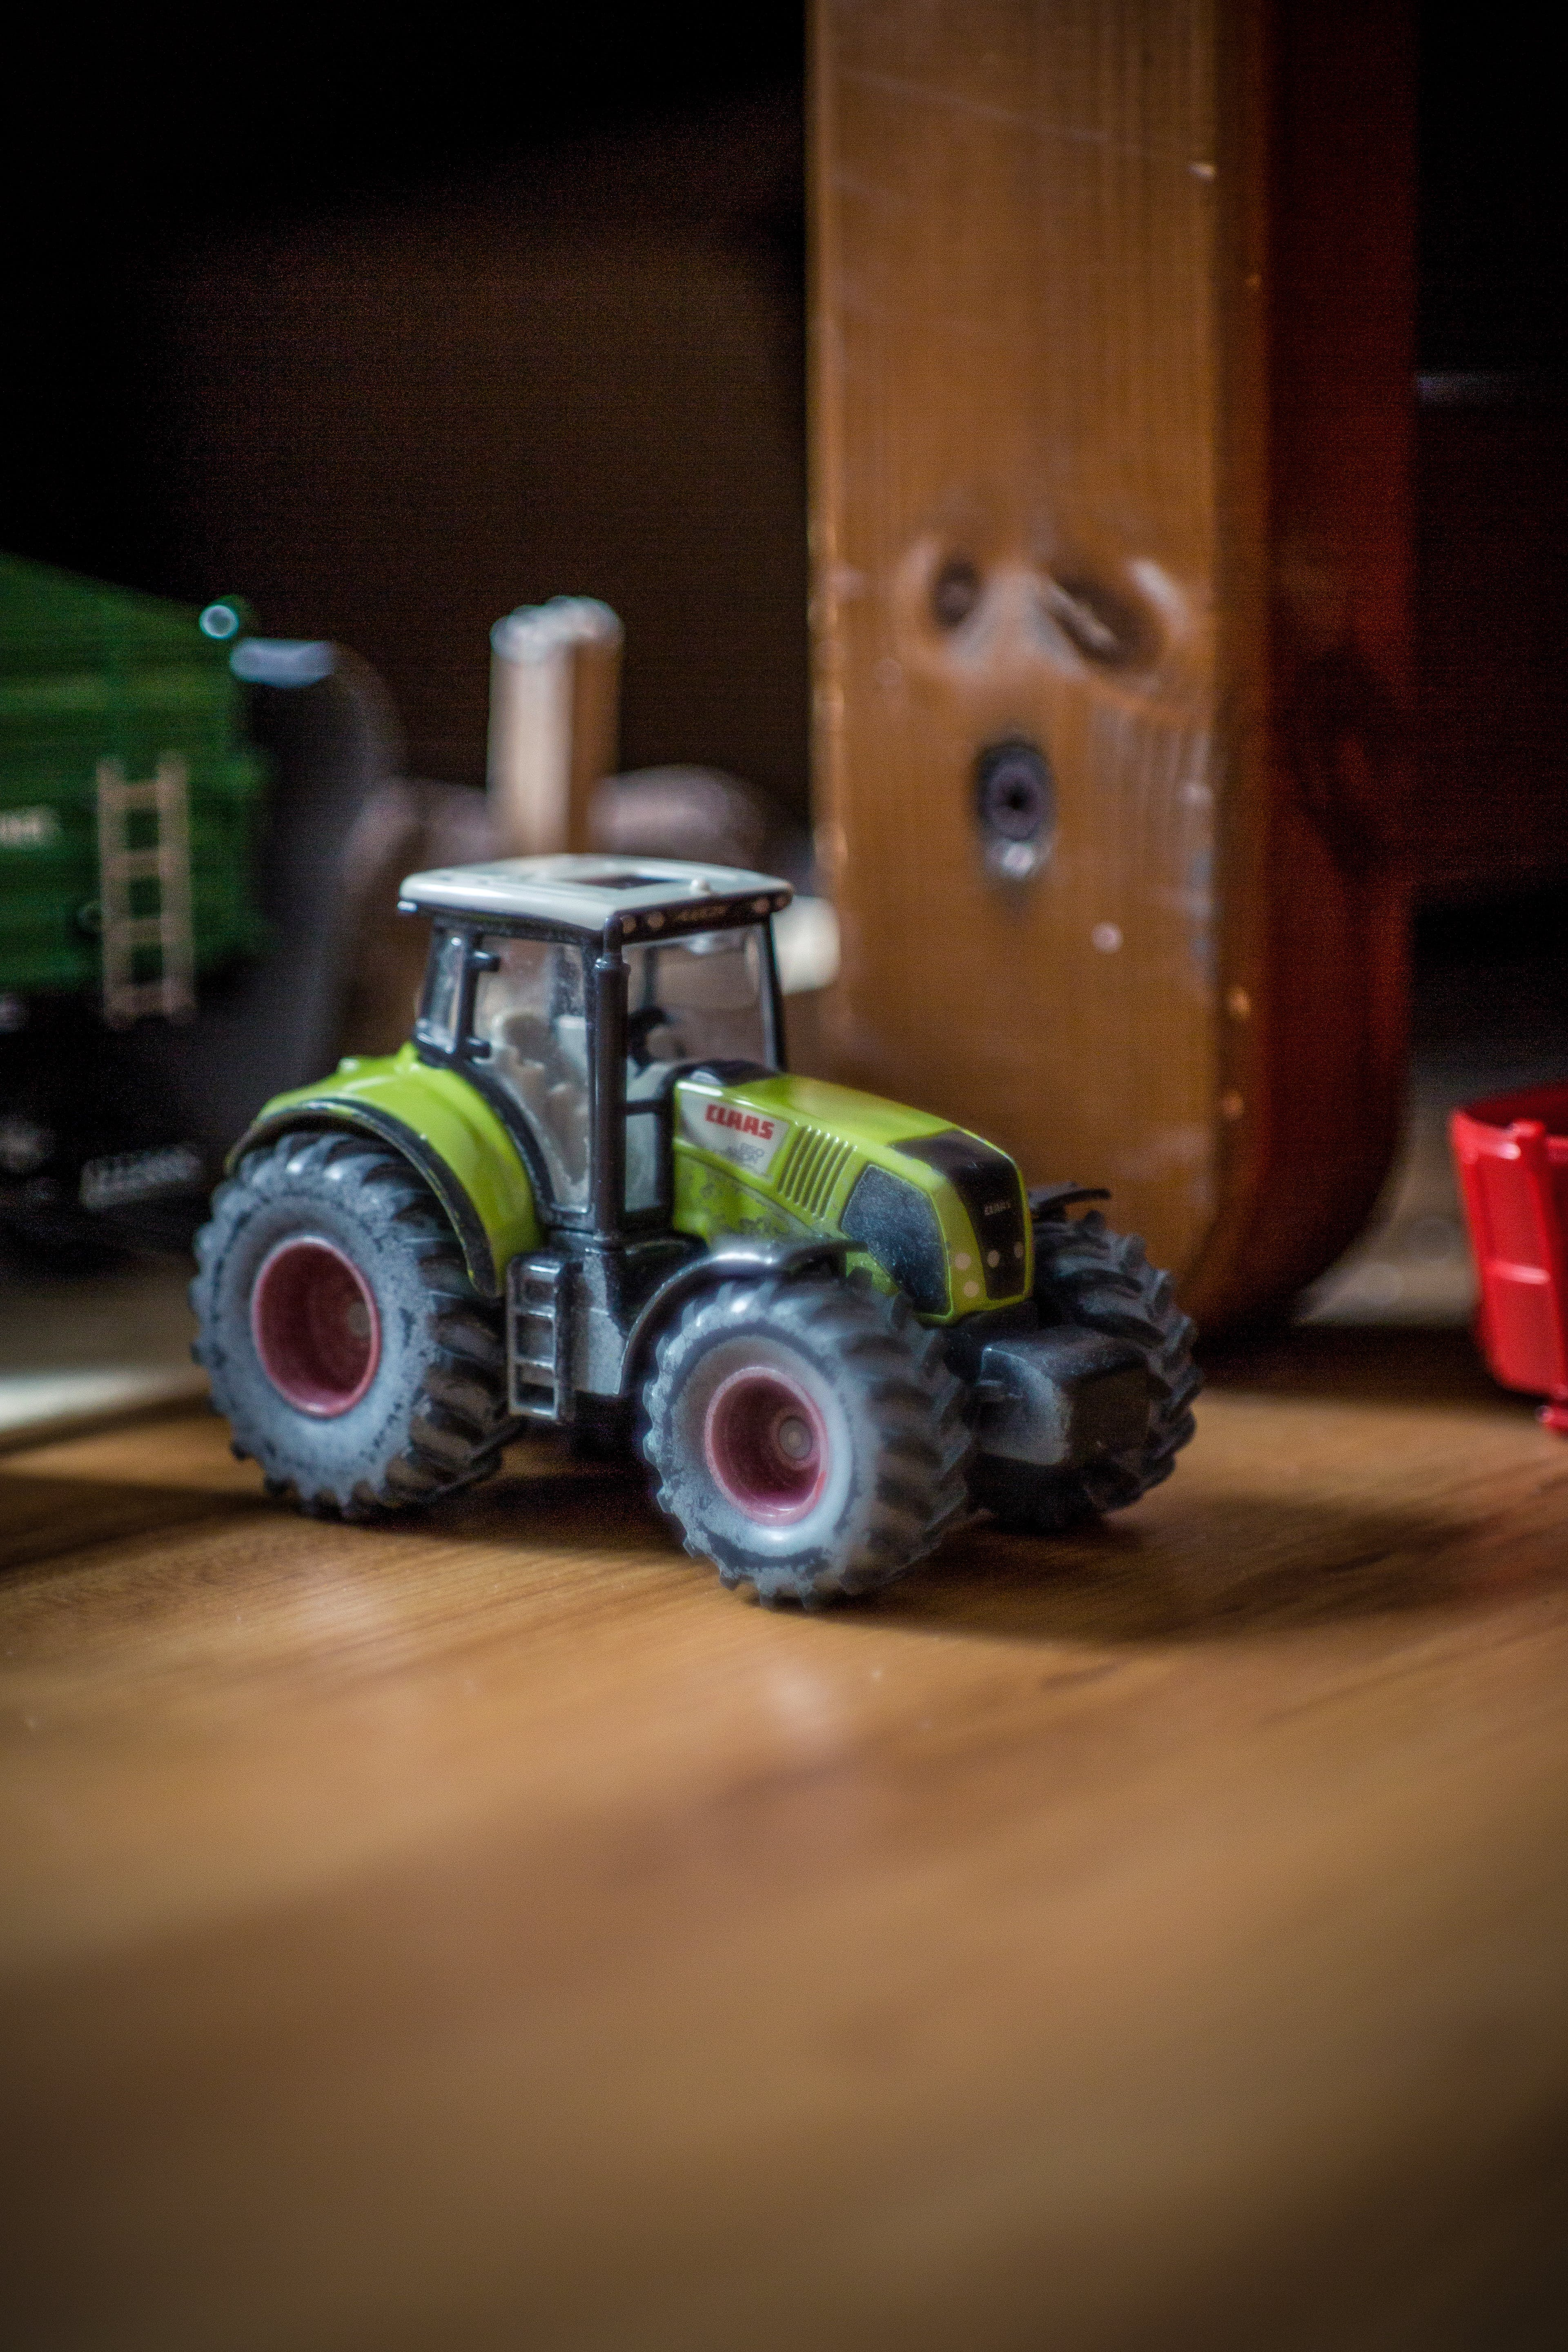 Green and Gray Tractor Plastic Model Above Wooden Surface